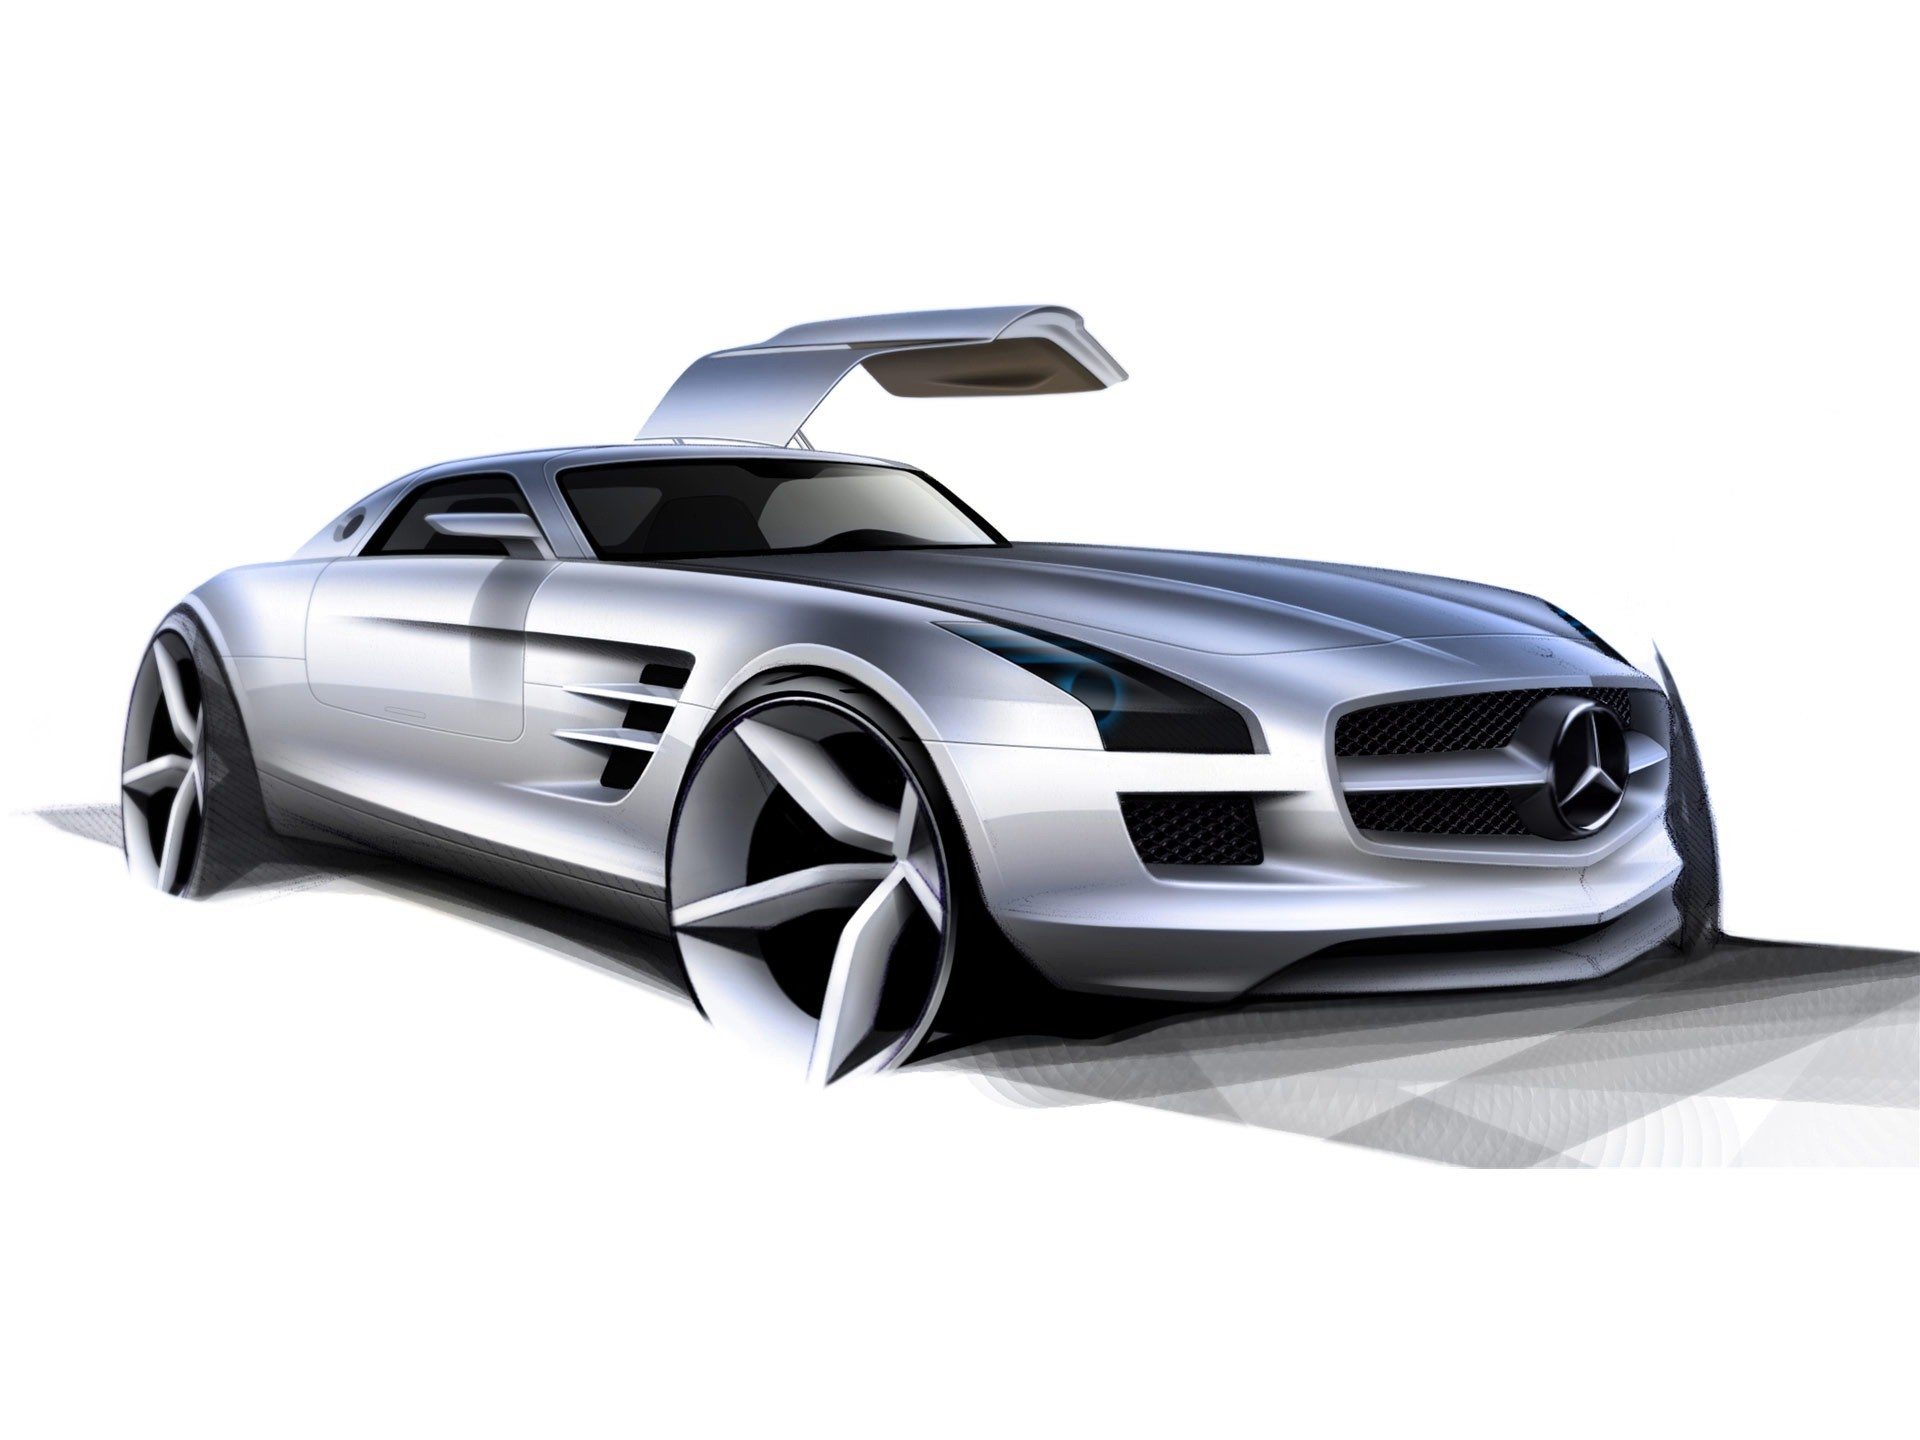 1920x1440 Mercedes Benz SLS AMG Wallpaper Concept Cars Wallpapers